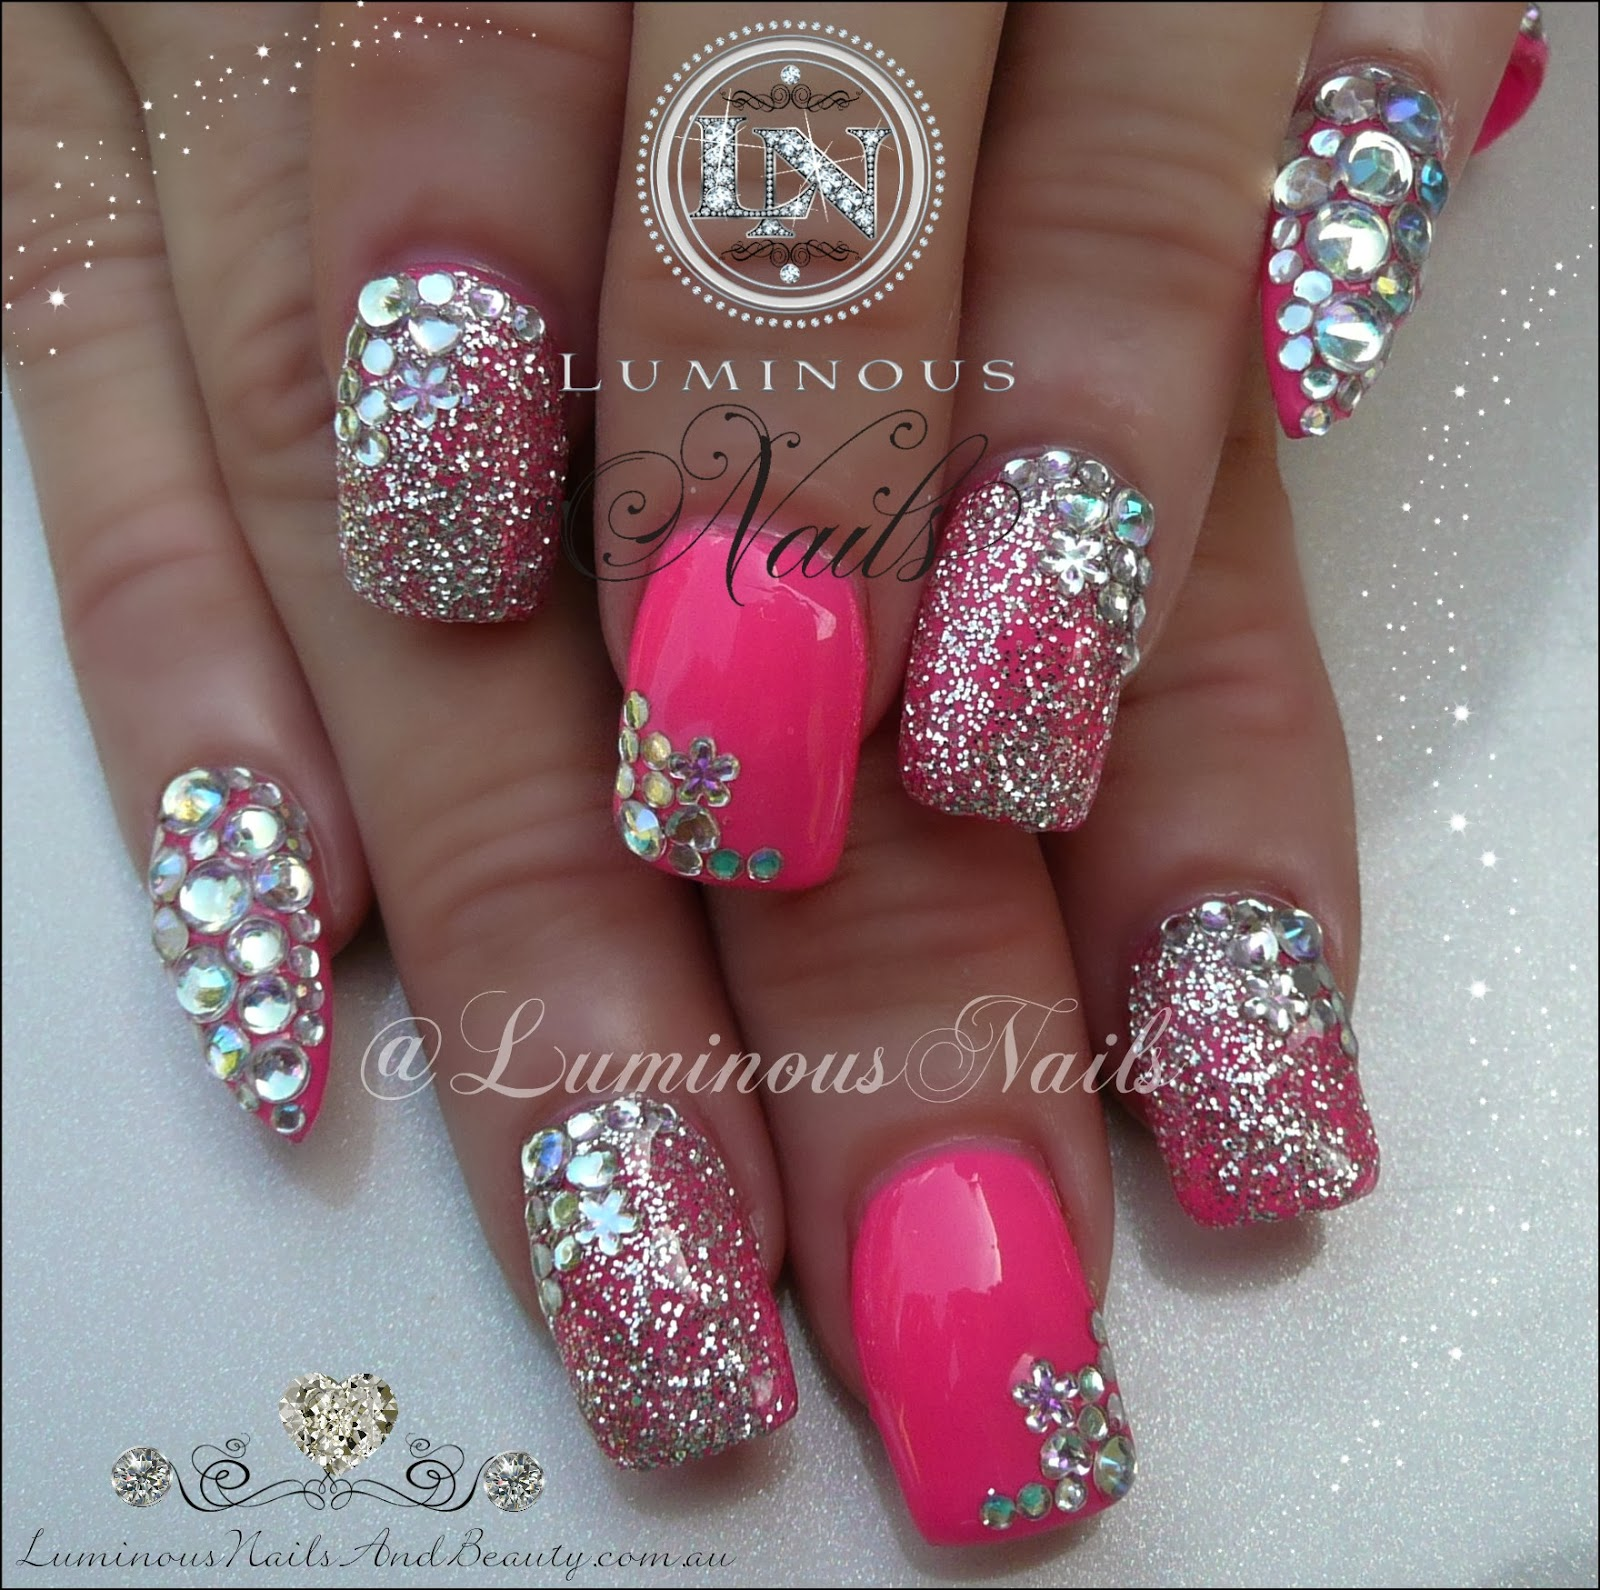 Acrylic nail designs with bling : Hot pink nails with silver bling